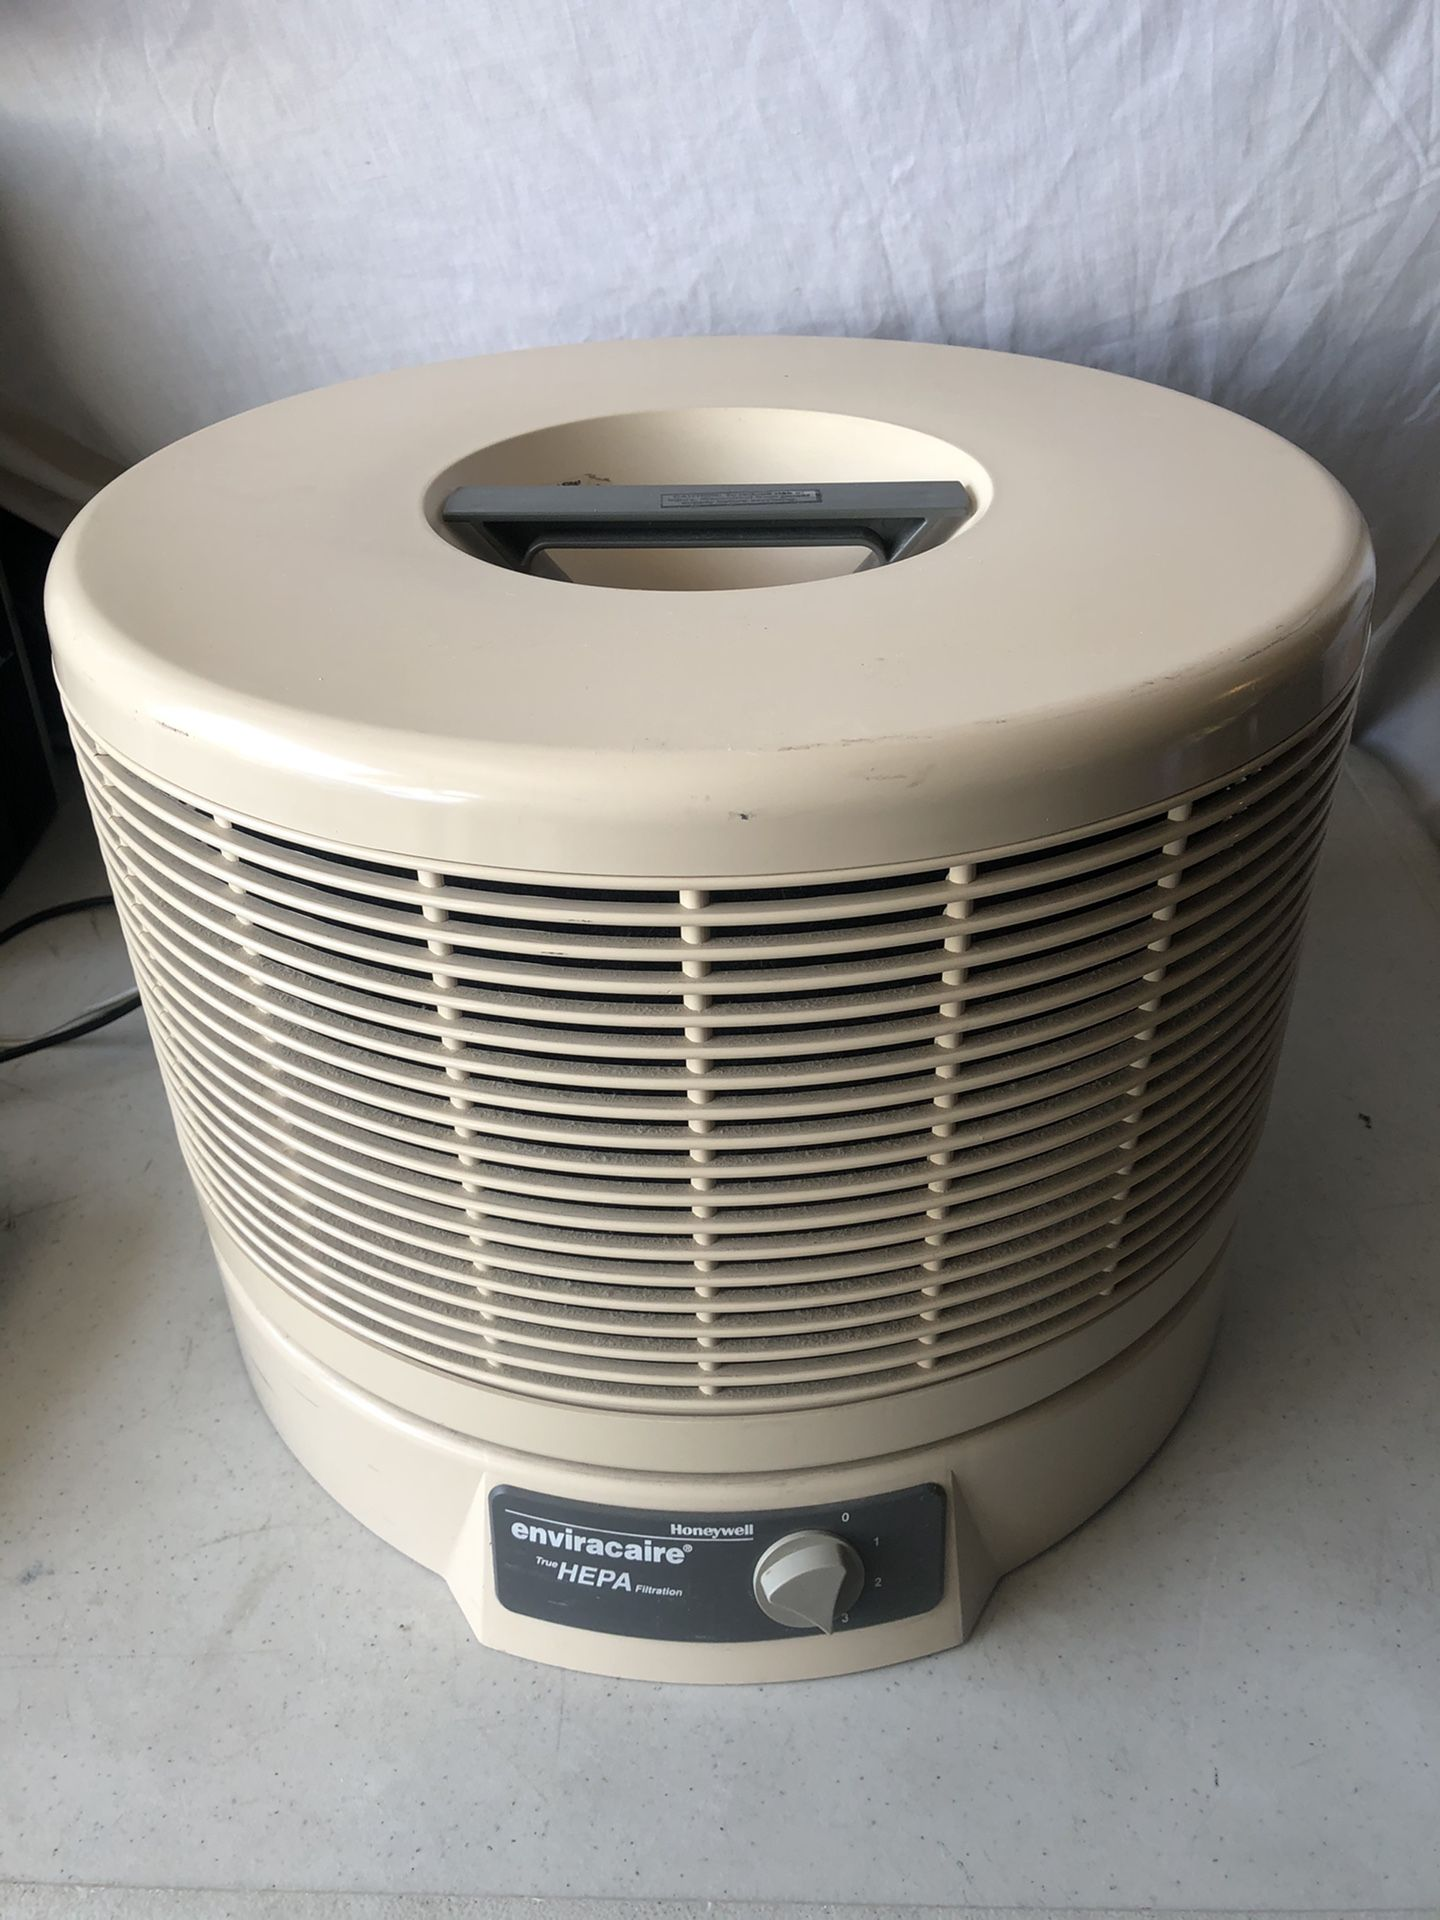 PRICE IS FIRM Honeywell 12520 HEPA Air Purifier COVERS 320 sq ft !!BRAND NEW FILTERS!! COMPLETELY CHANGES THE WHOLE AIR IN THE ROOM 6 times every hour